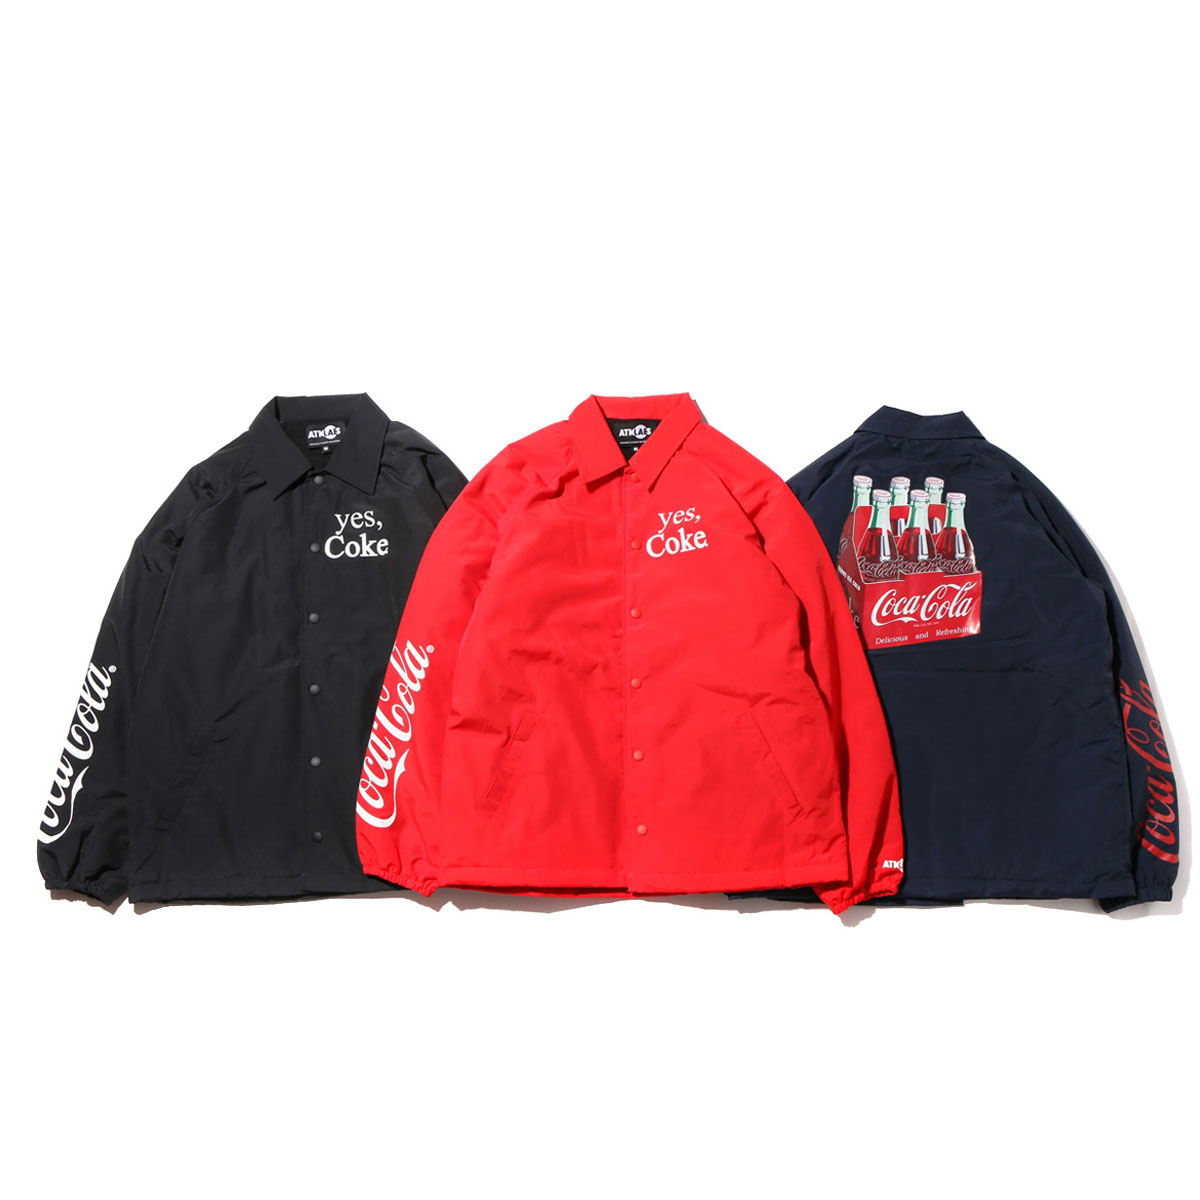 COCA-COLA by ATMOS LAB 6 BOTTLES COACH JACKET